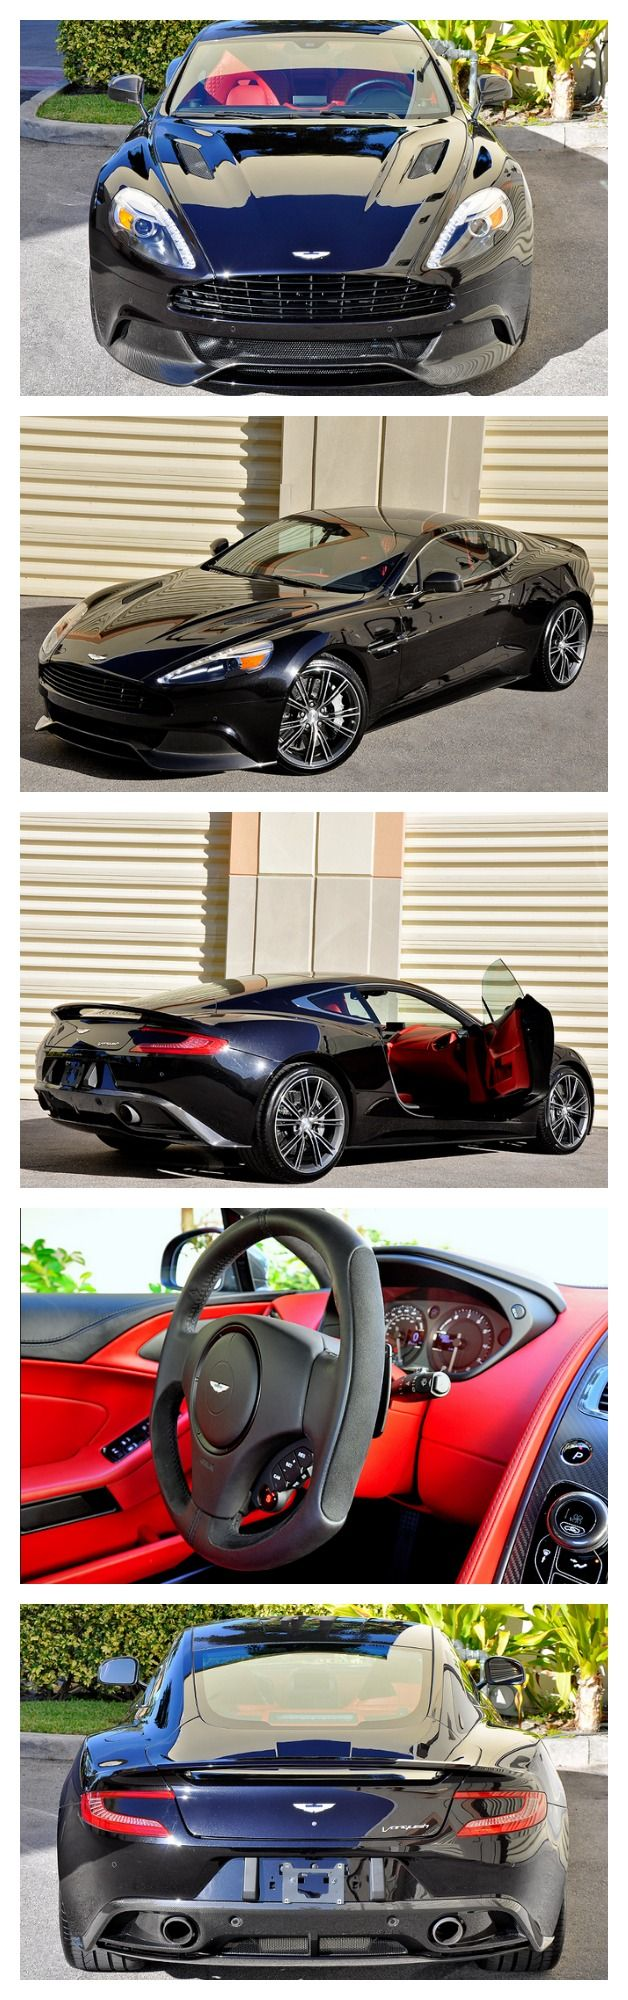 Aston Martin : Vanquish Coupe! Best Color Combo! Loaded